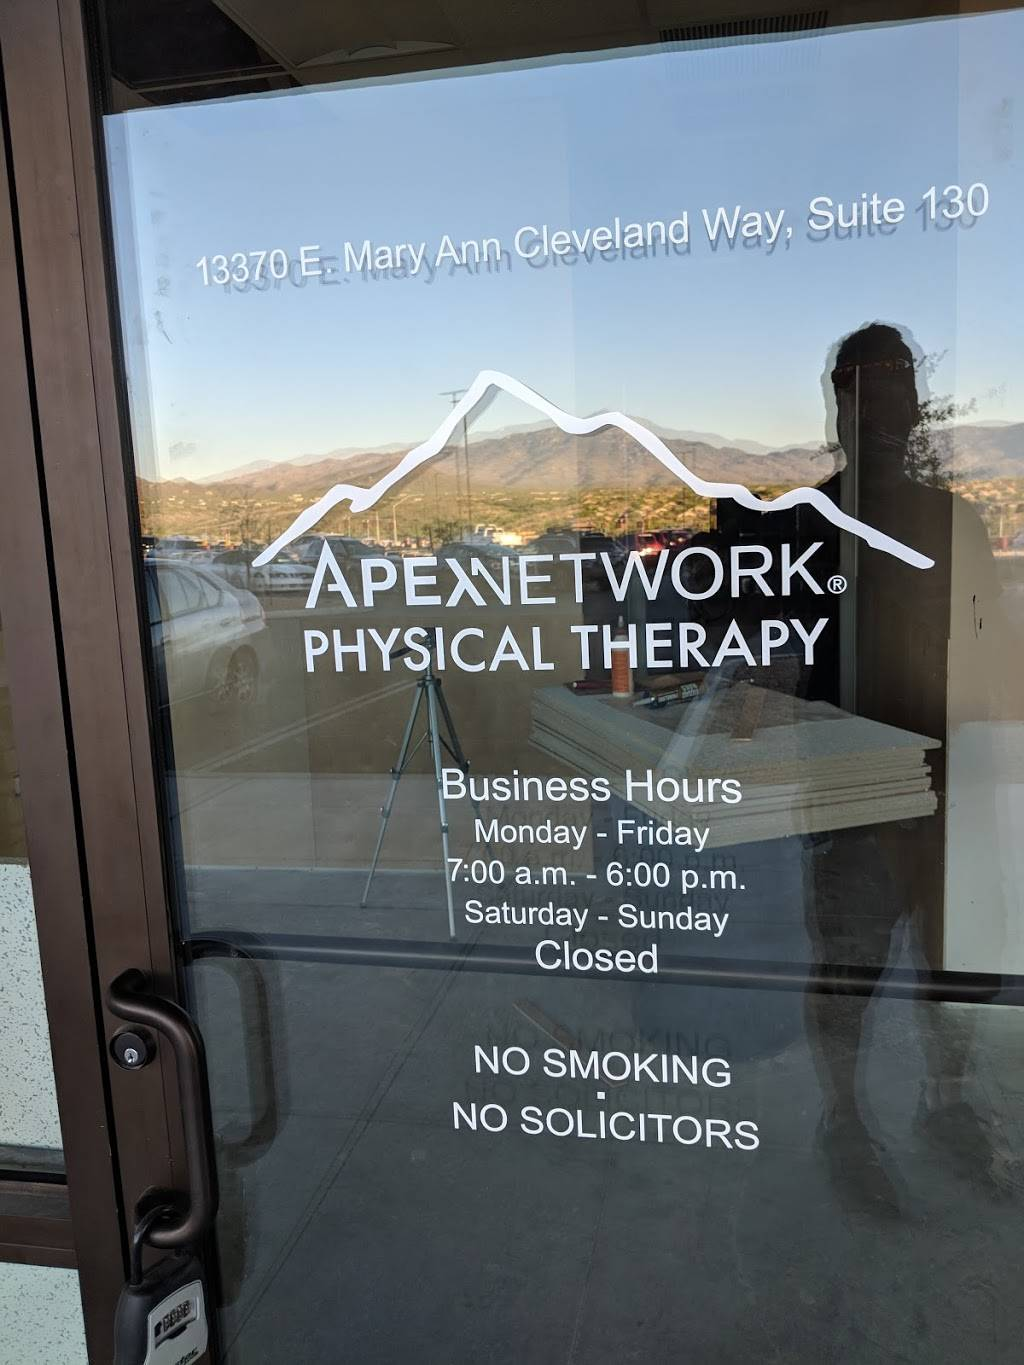 ApexNetwork Physical Therapy - physiotherapist  | Photo 8 of 9 | Address: 13370 E Mary Ann Cleveland Way Suite 130, Vail, AZ 85641, USA | Phone: (520) 689-7144